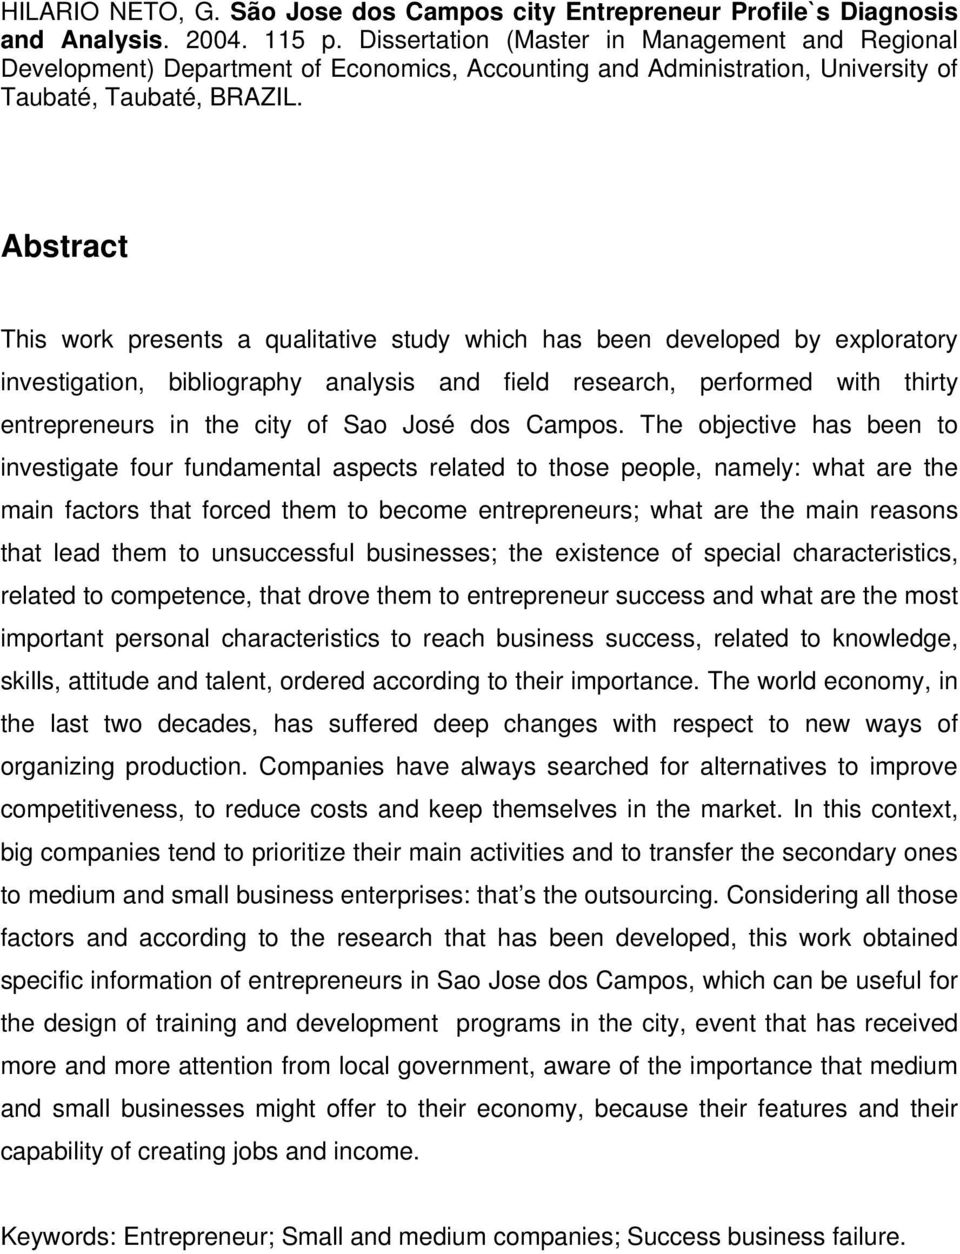 6 Abstract This work presents a qualitative study which has been developed by exploratory investigation, bibliography analysis and field research, performed with thirty entrepreneurs in the city of